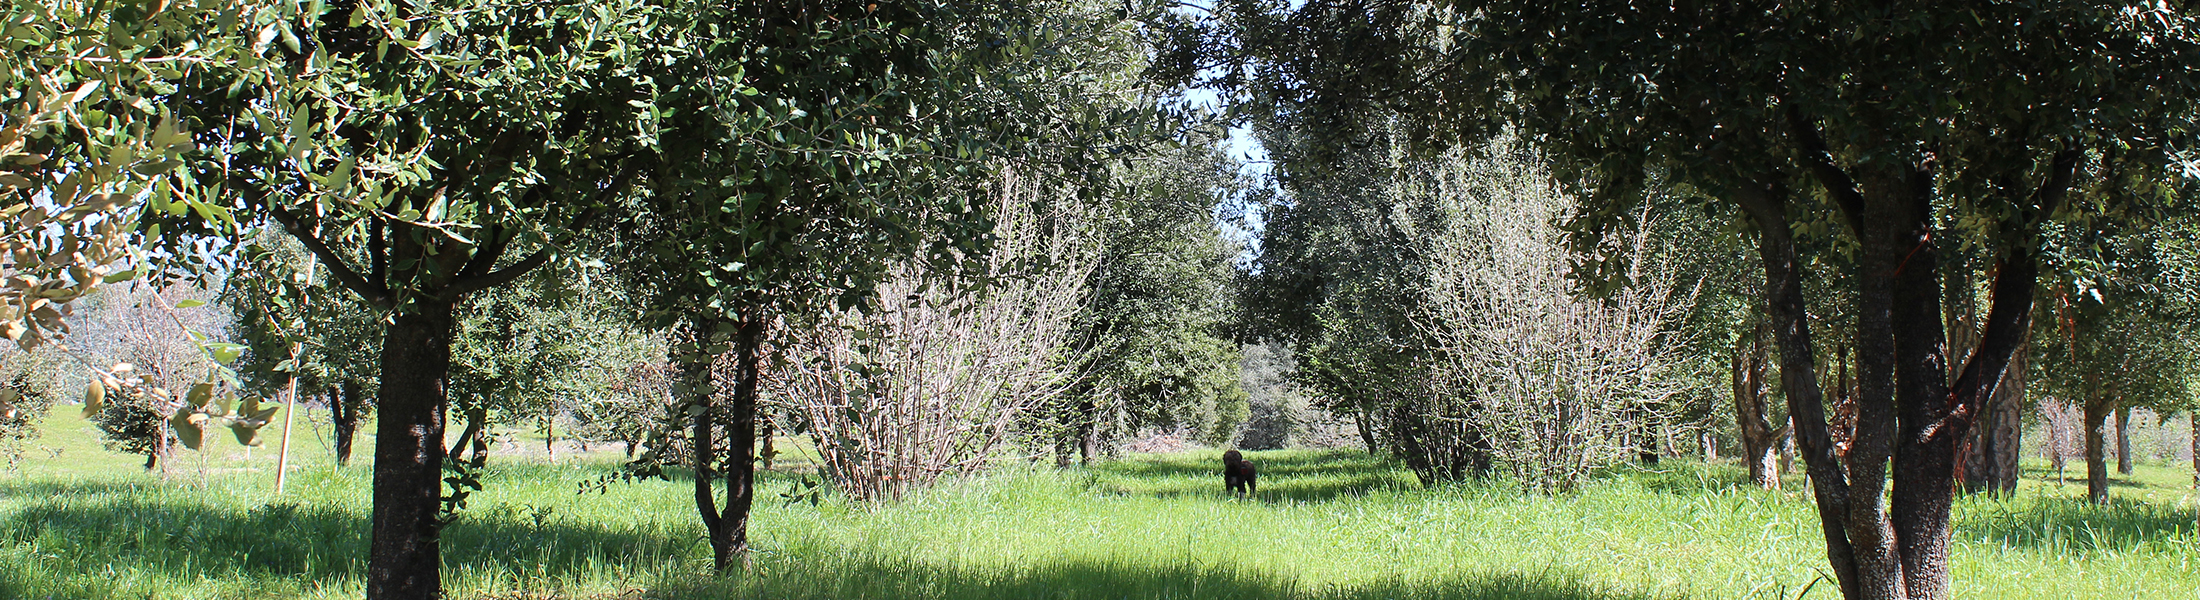 Tesoro Mio (Treasure of mine) is a producing truffle farm